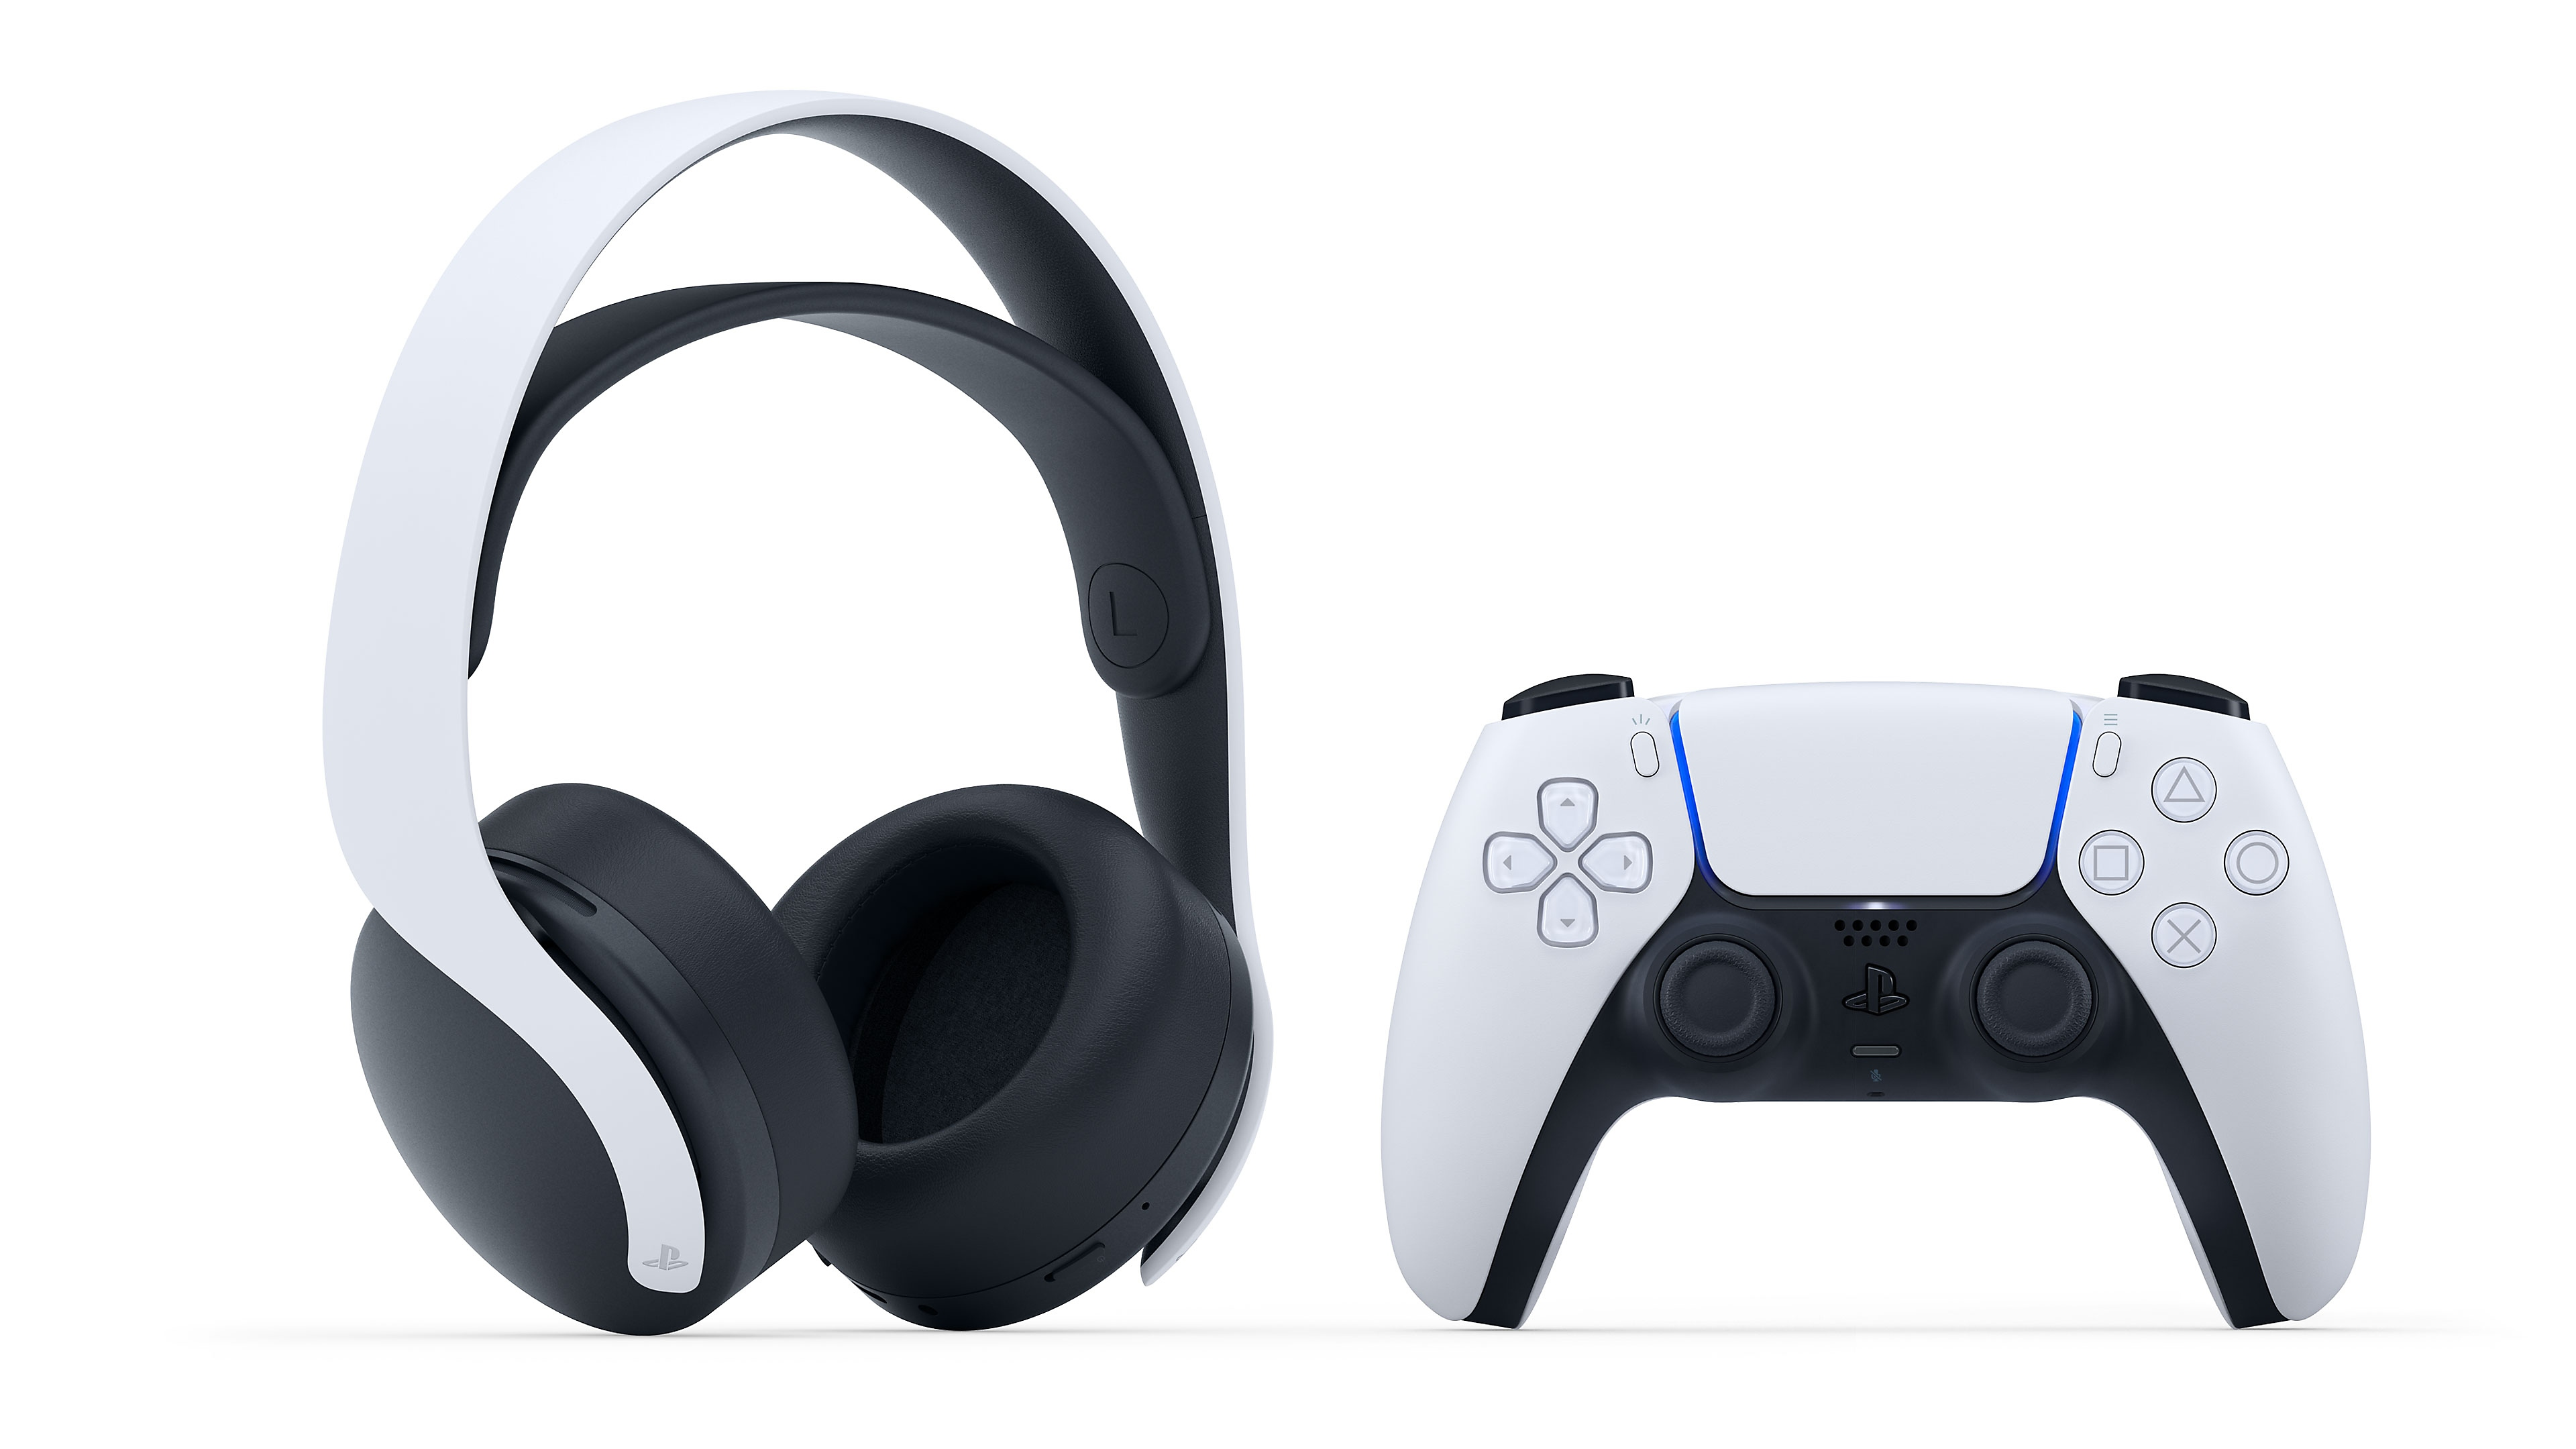 White headset and controller